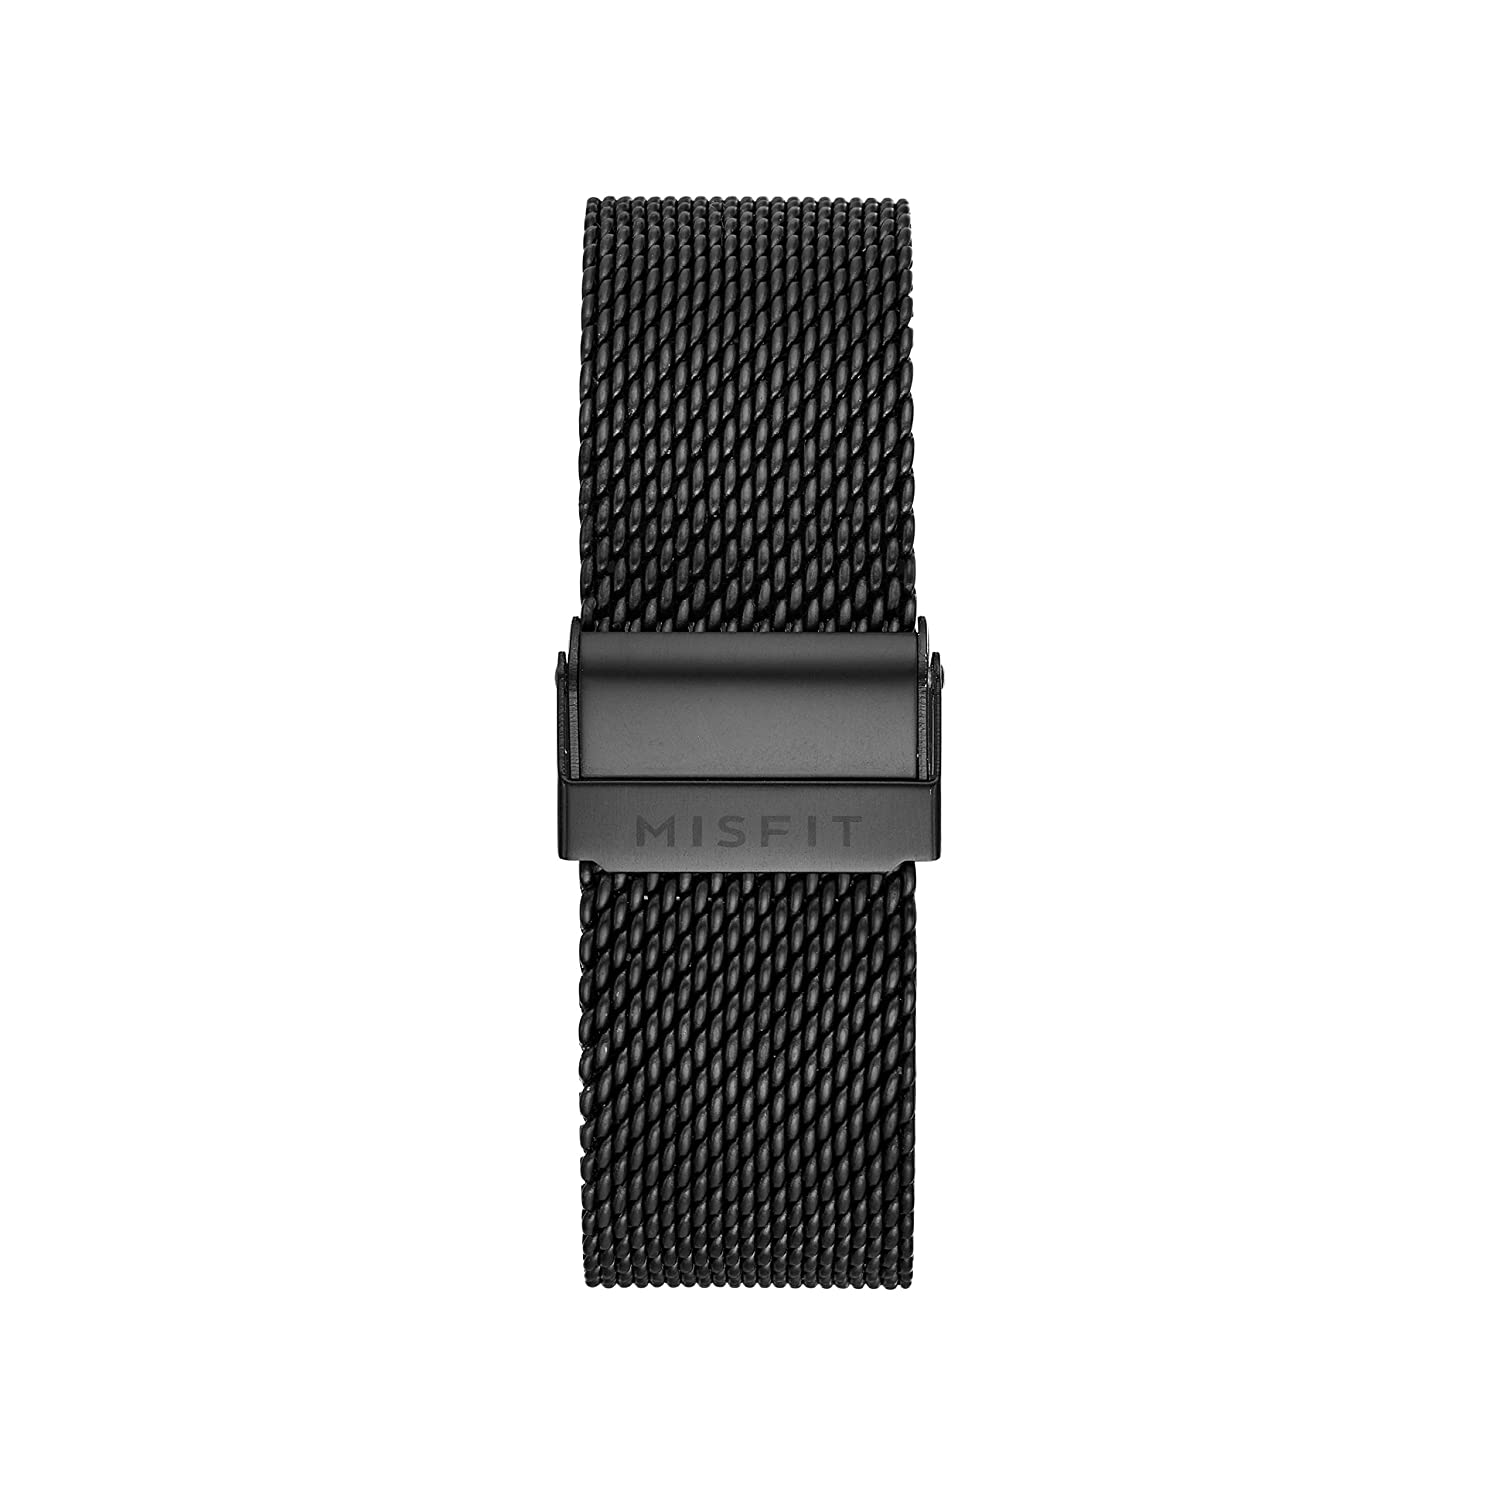 20MM Misfit Smartwatch Stainless Steel Mesh Band Color: Jet ...